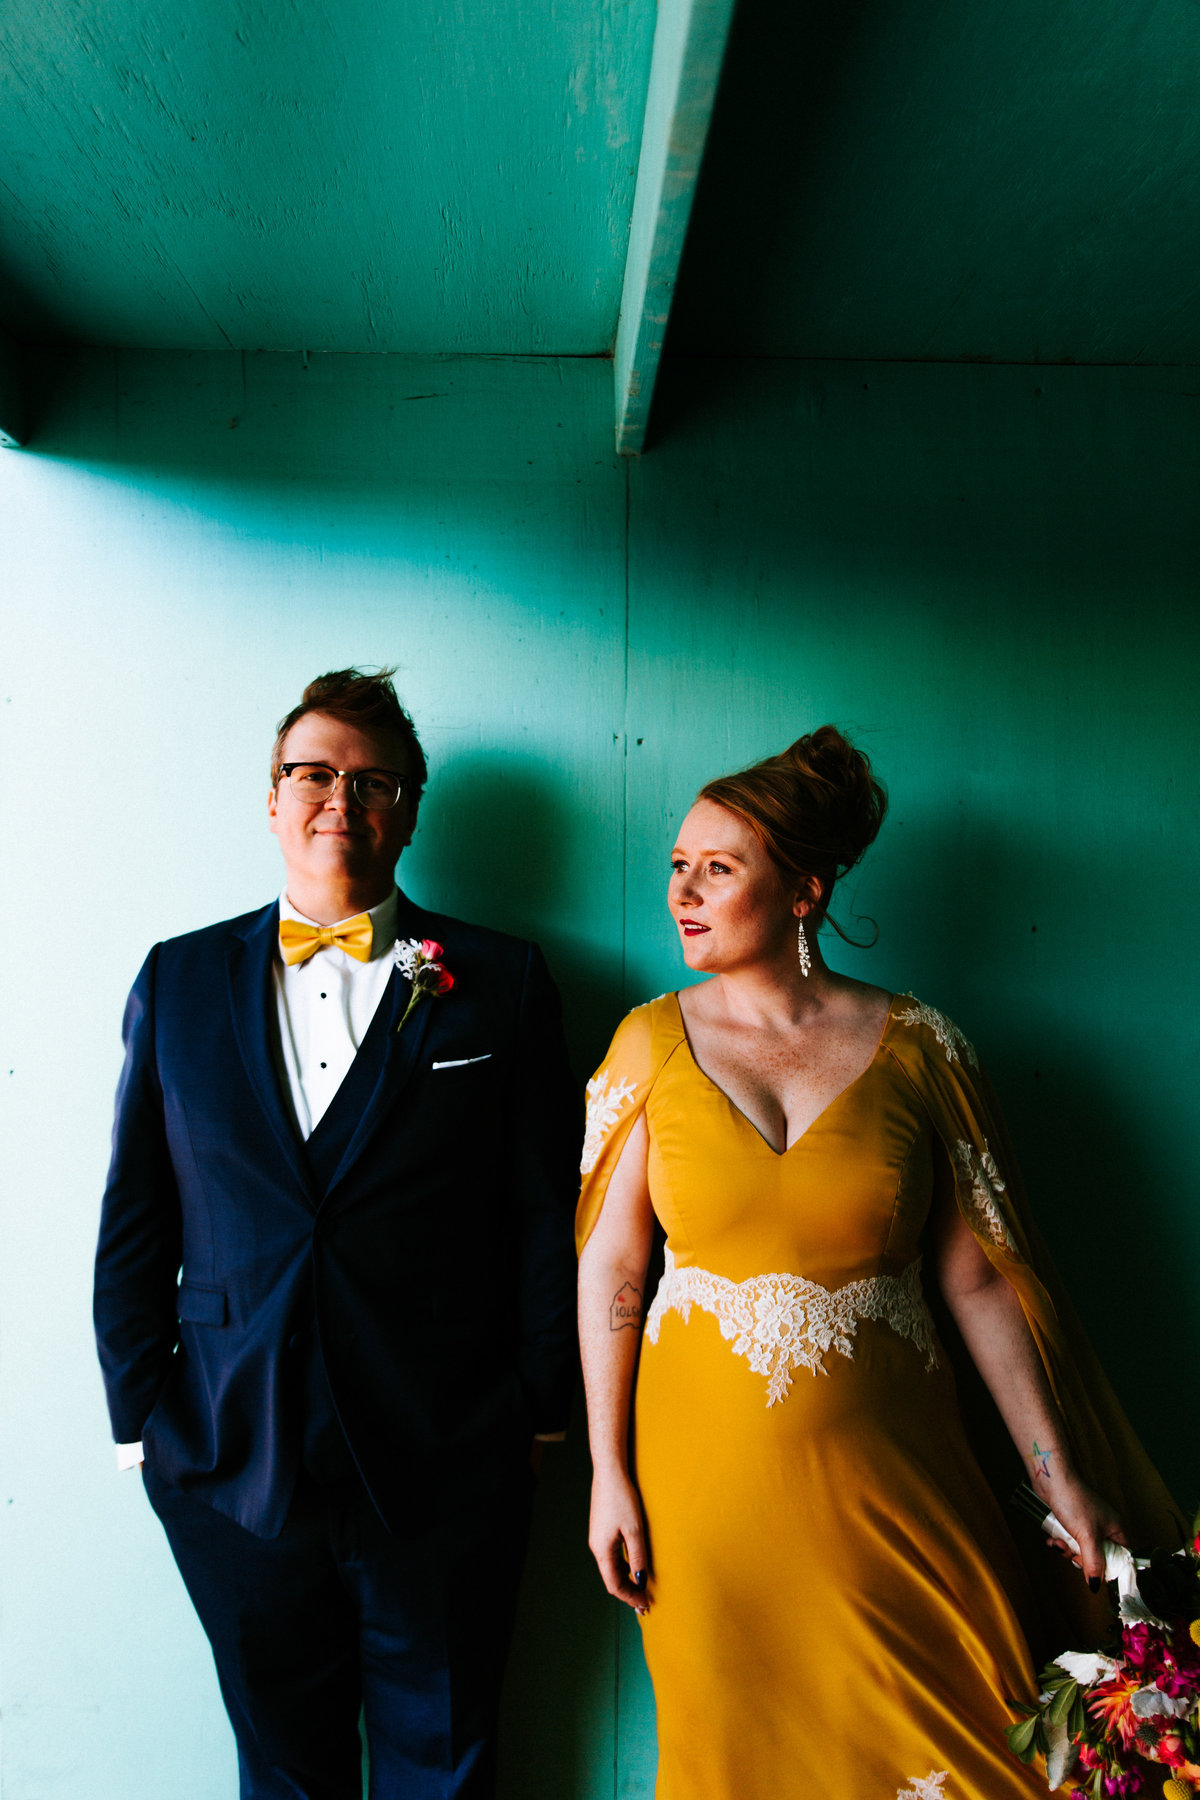 One of the top wedding photos of 2019. Taken by Adore Wedding Photography- Toledo Ohio Wedding Photographers. This photo is of bride and groom in front of a colorful wall at the Toledo Zoo